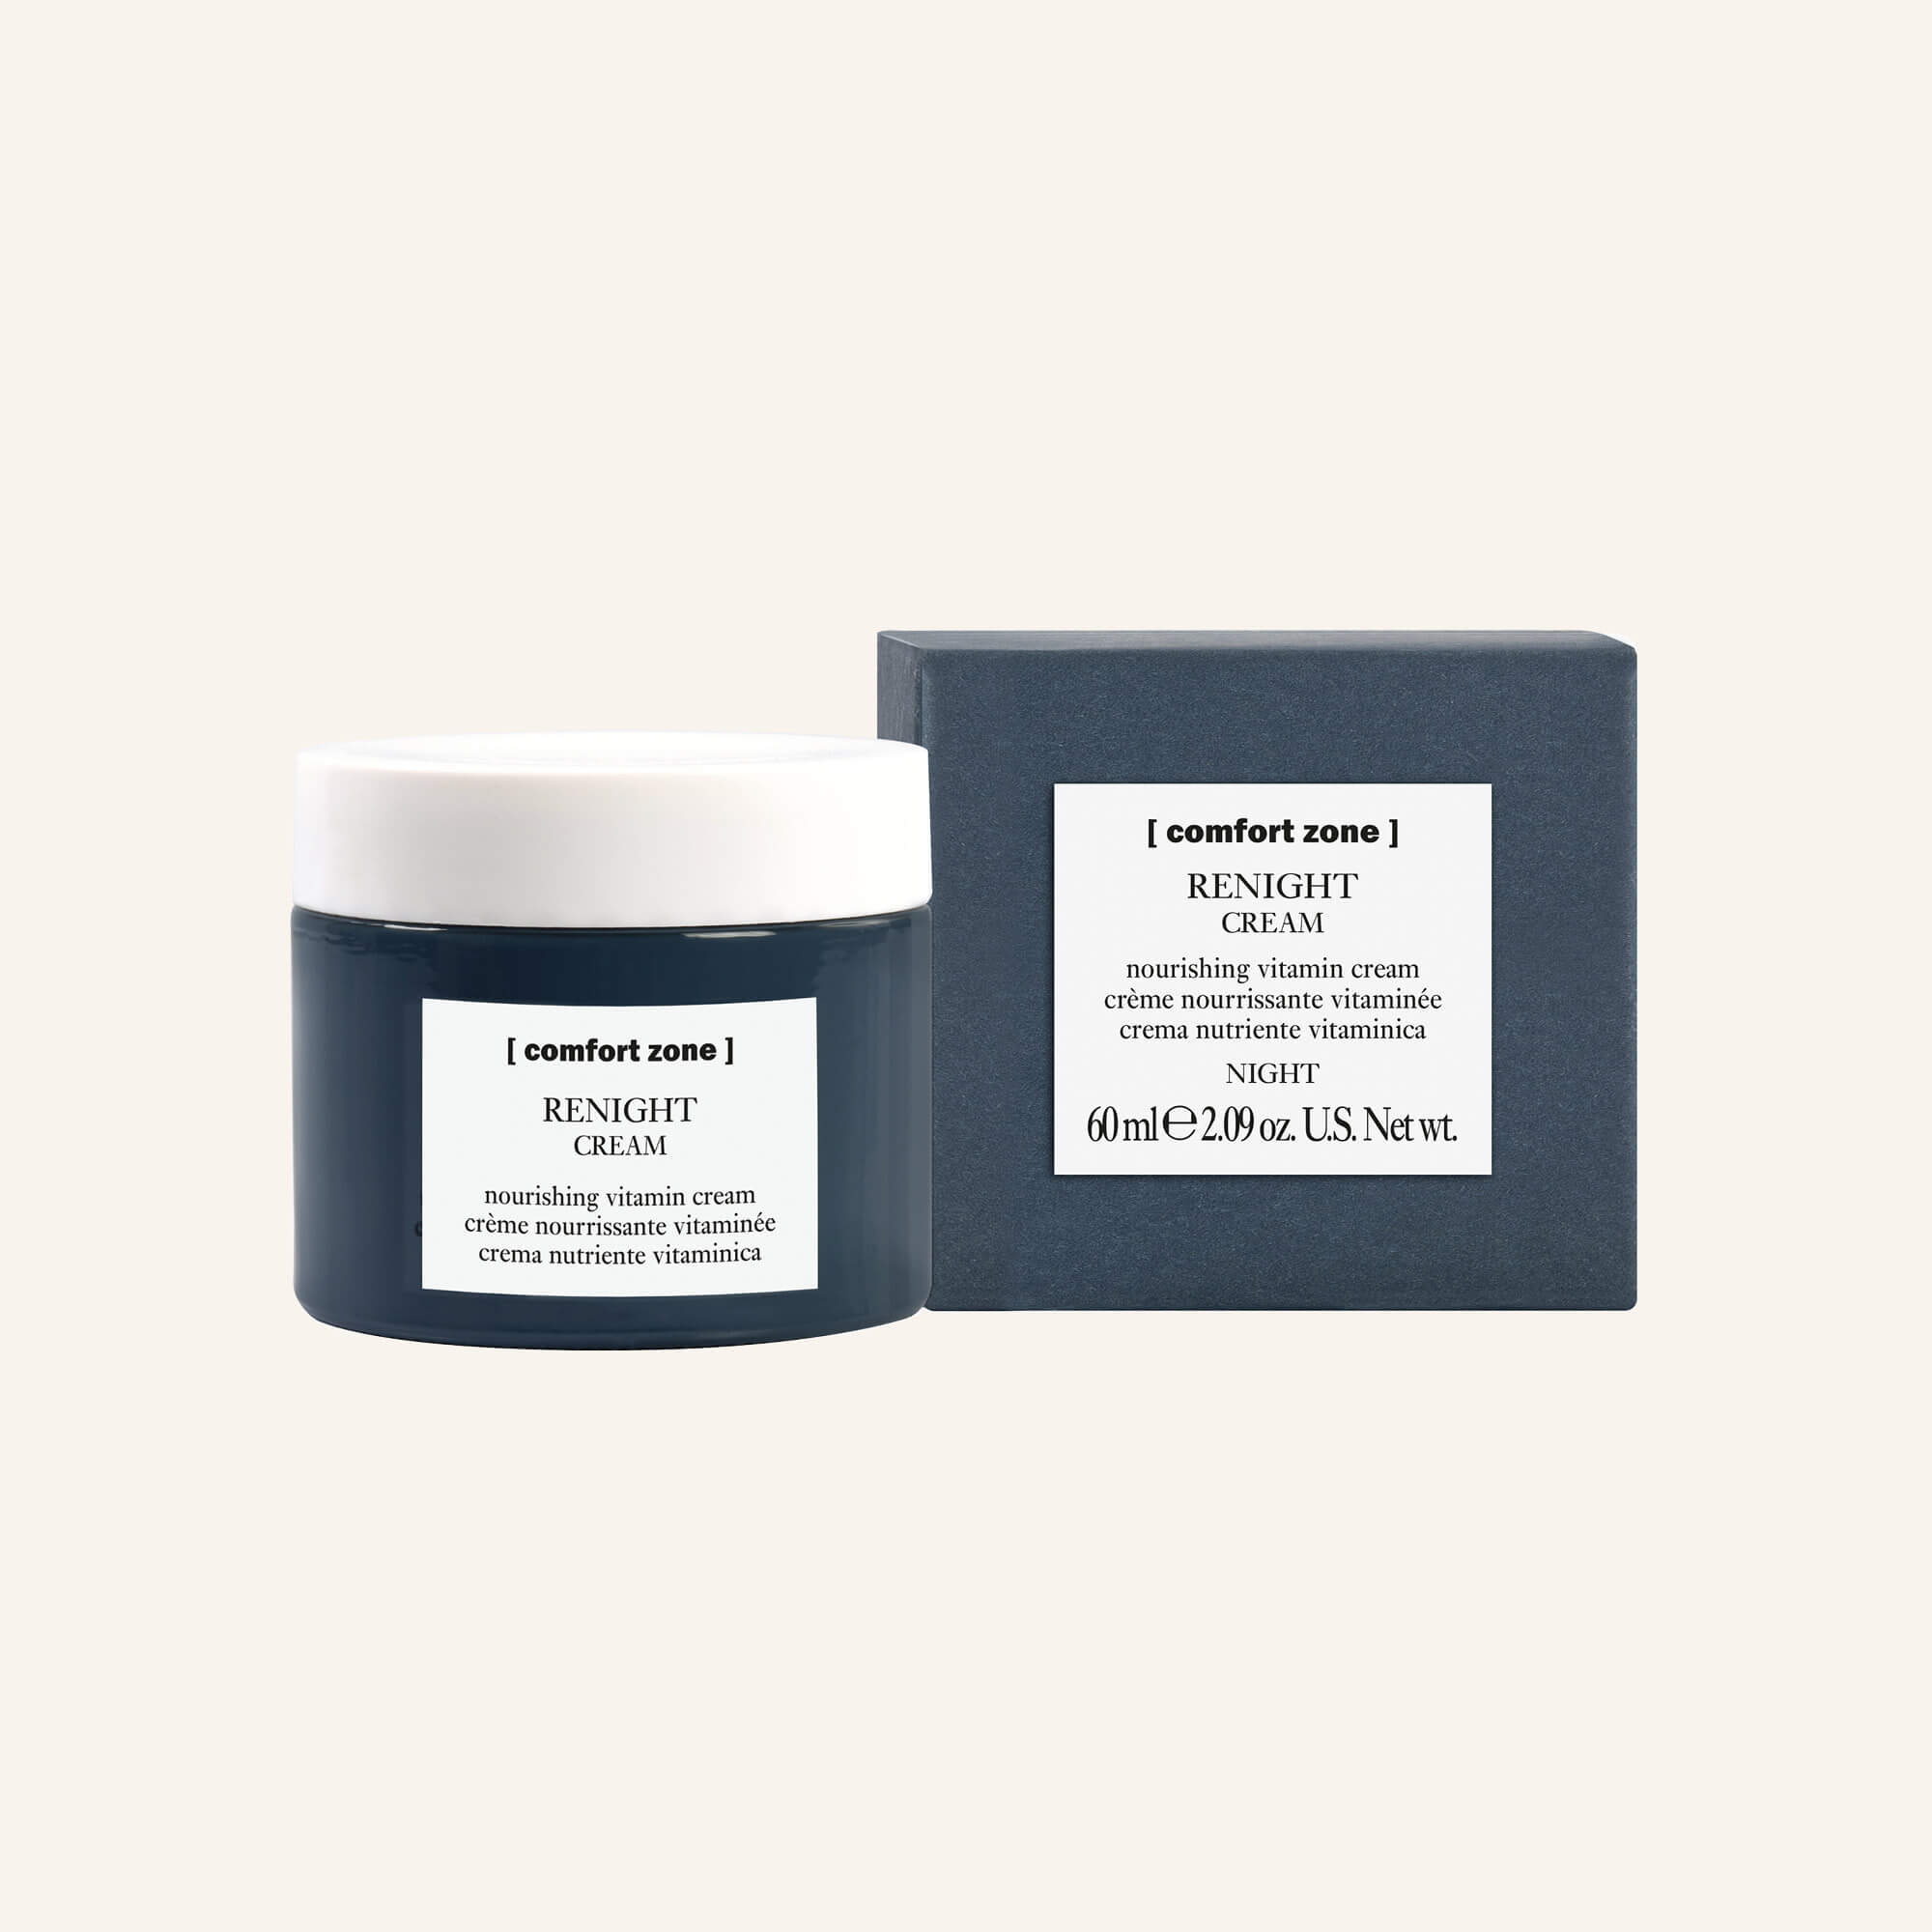 Renight Cream • Nährstoffspendene Vitamincreme - Beauty Eco Soul • Ramona Rieso